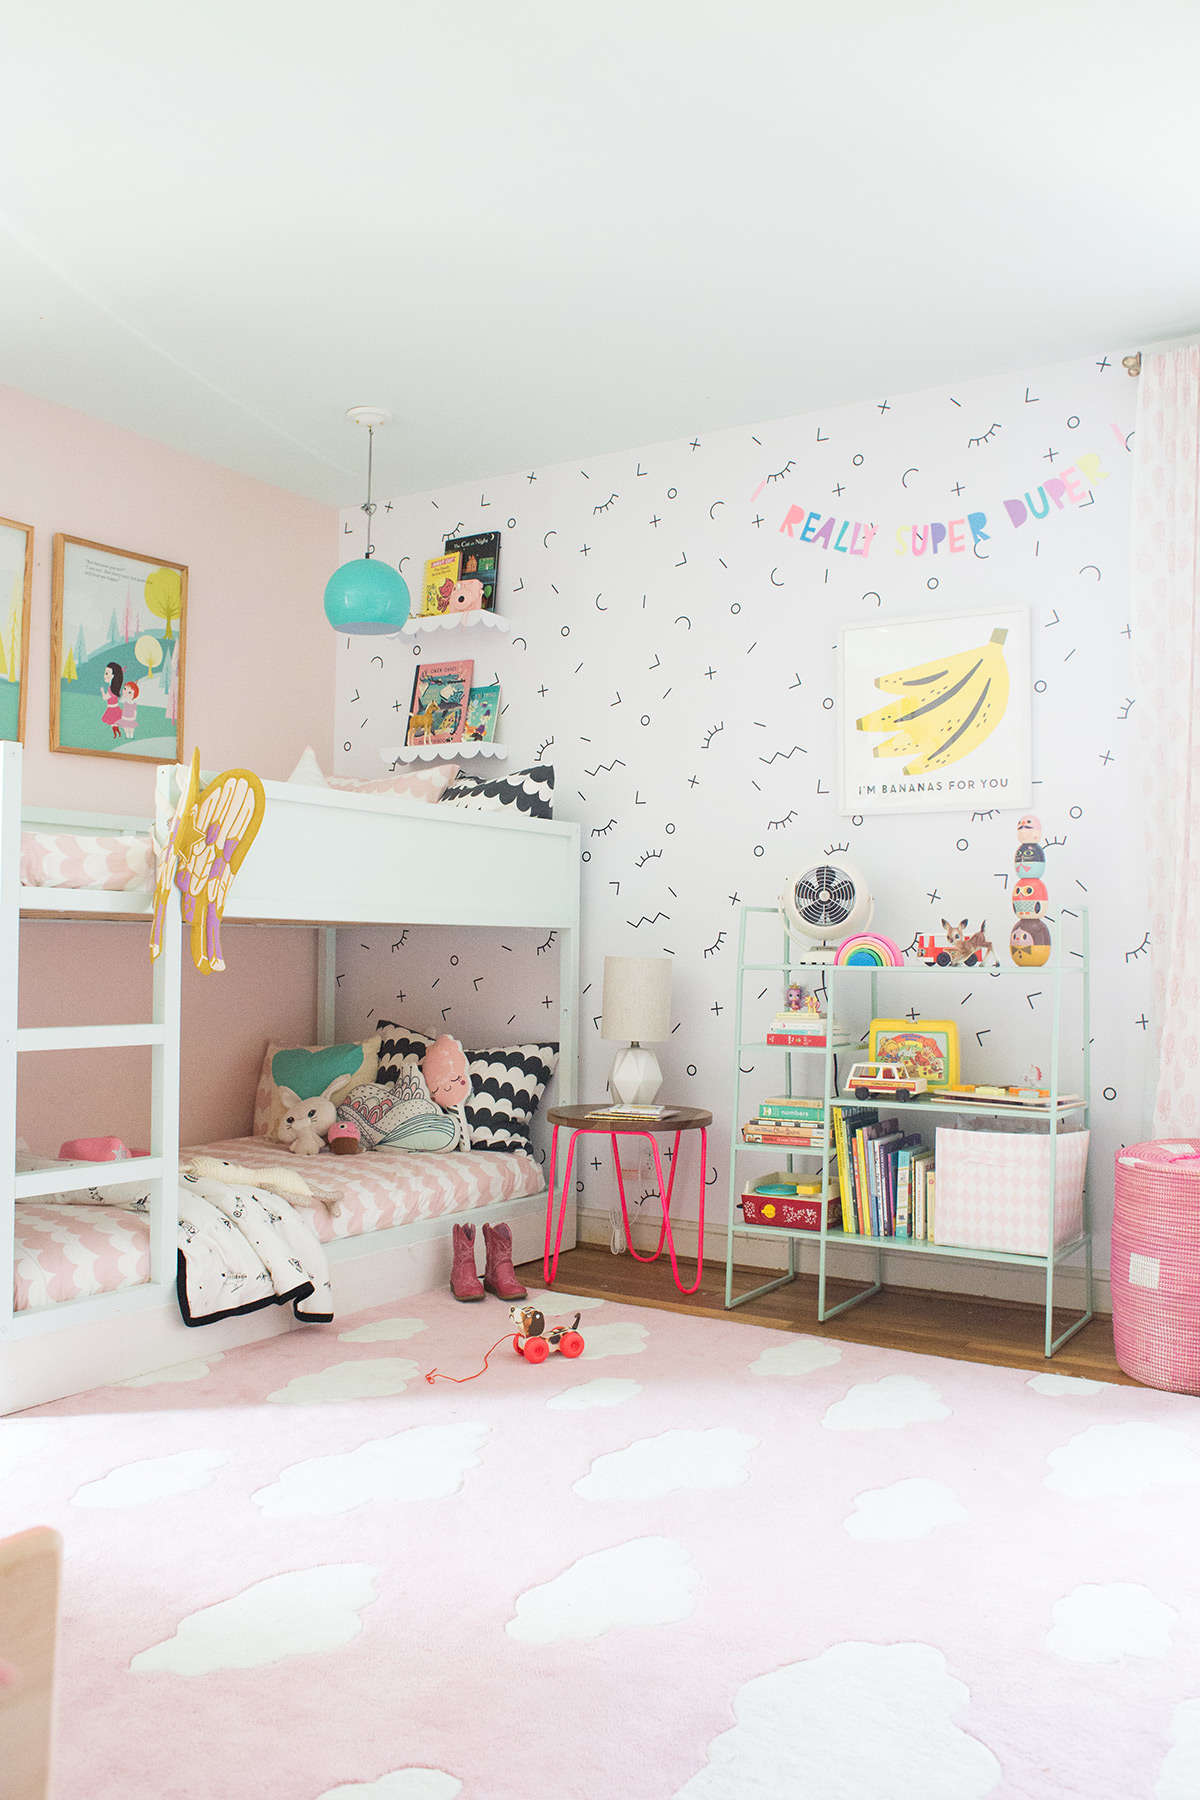 A shared bedroom with bunk beds lay baby lay lay baby lay for Children bedroom designs girls